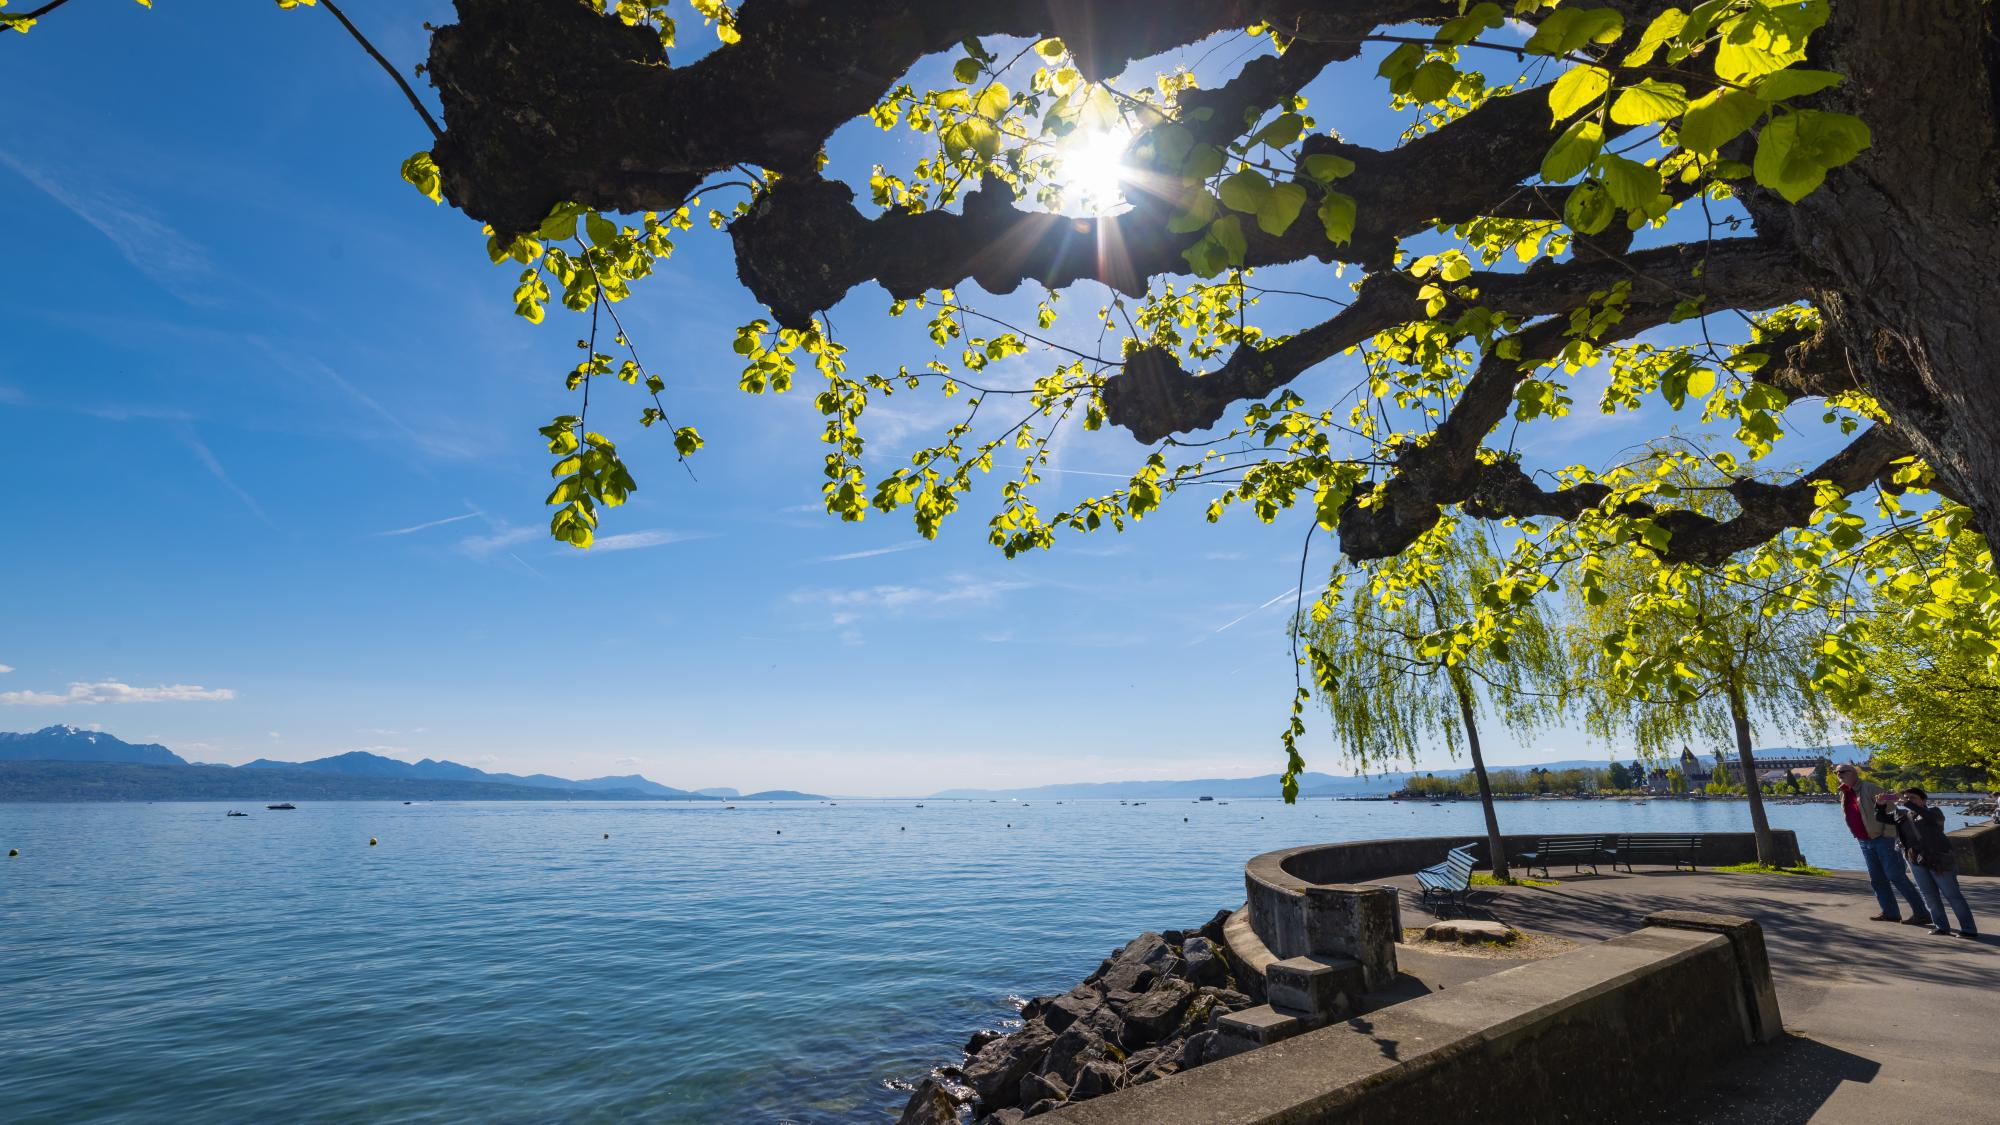 Ouchy - Lake Geneva - © LT/ Laurent KACZOR